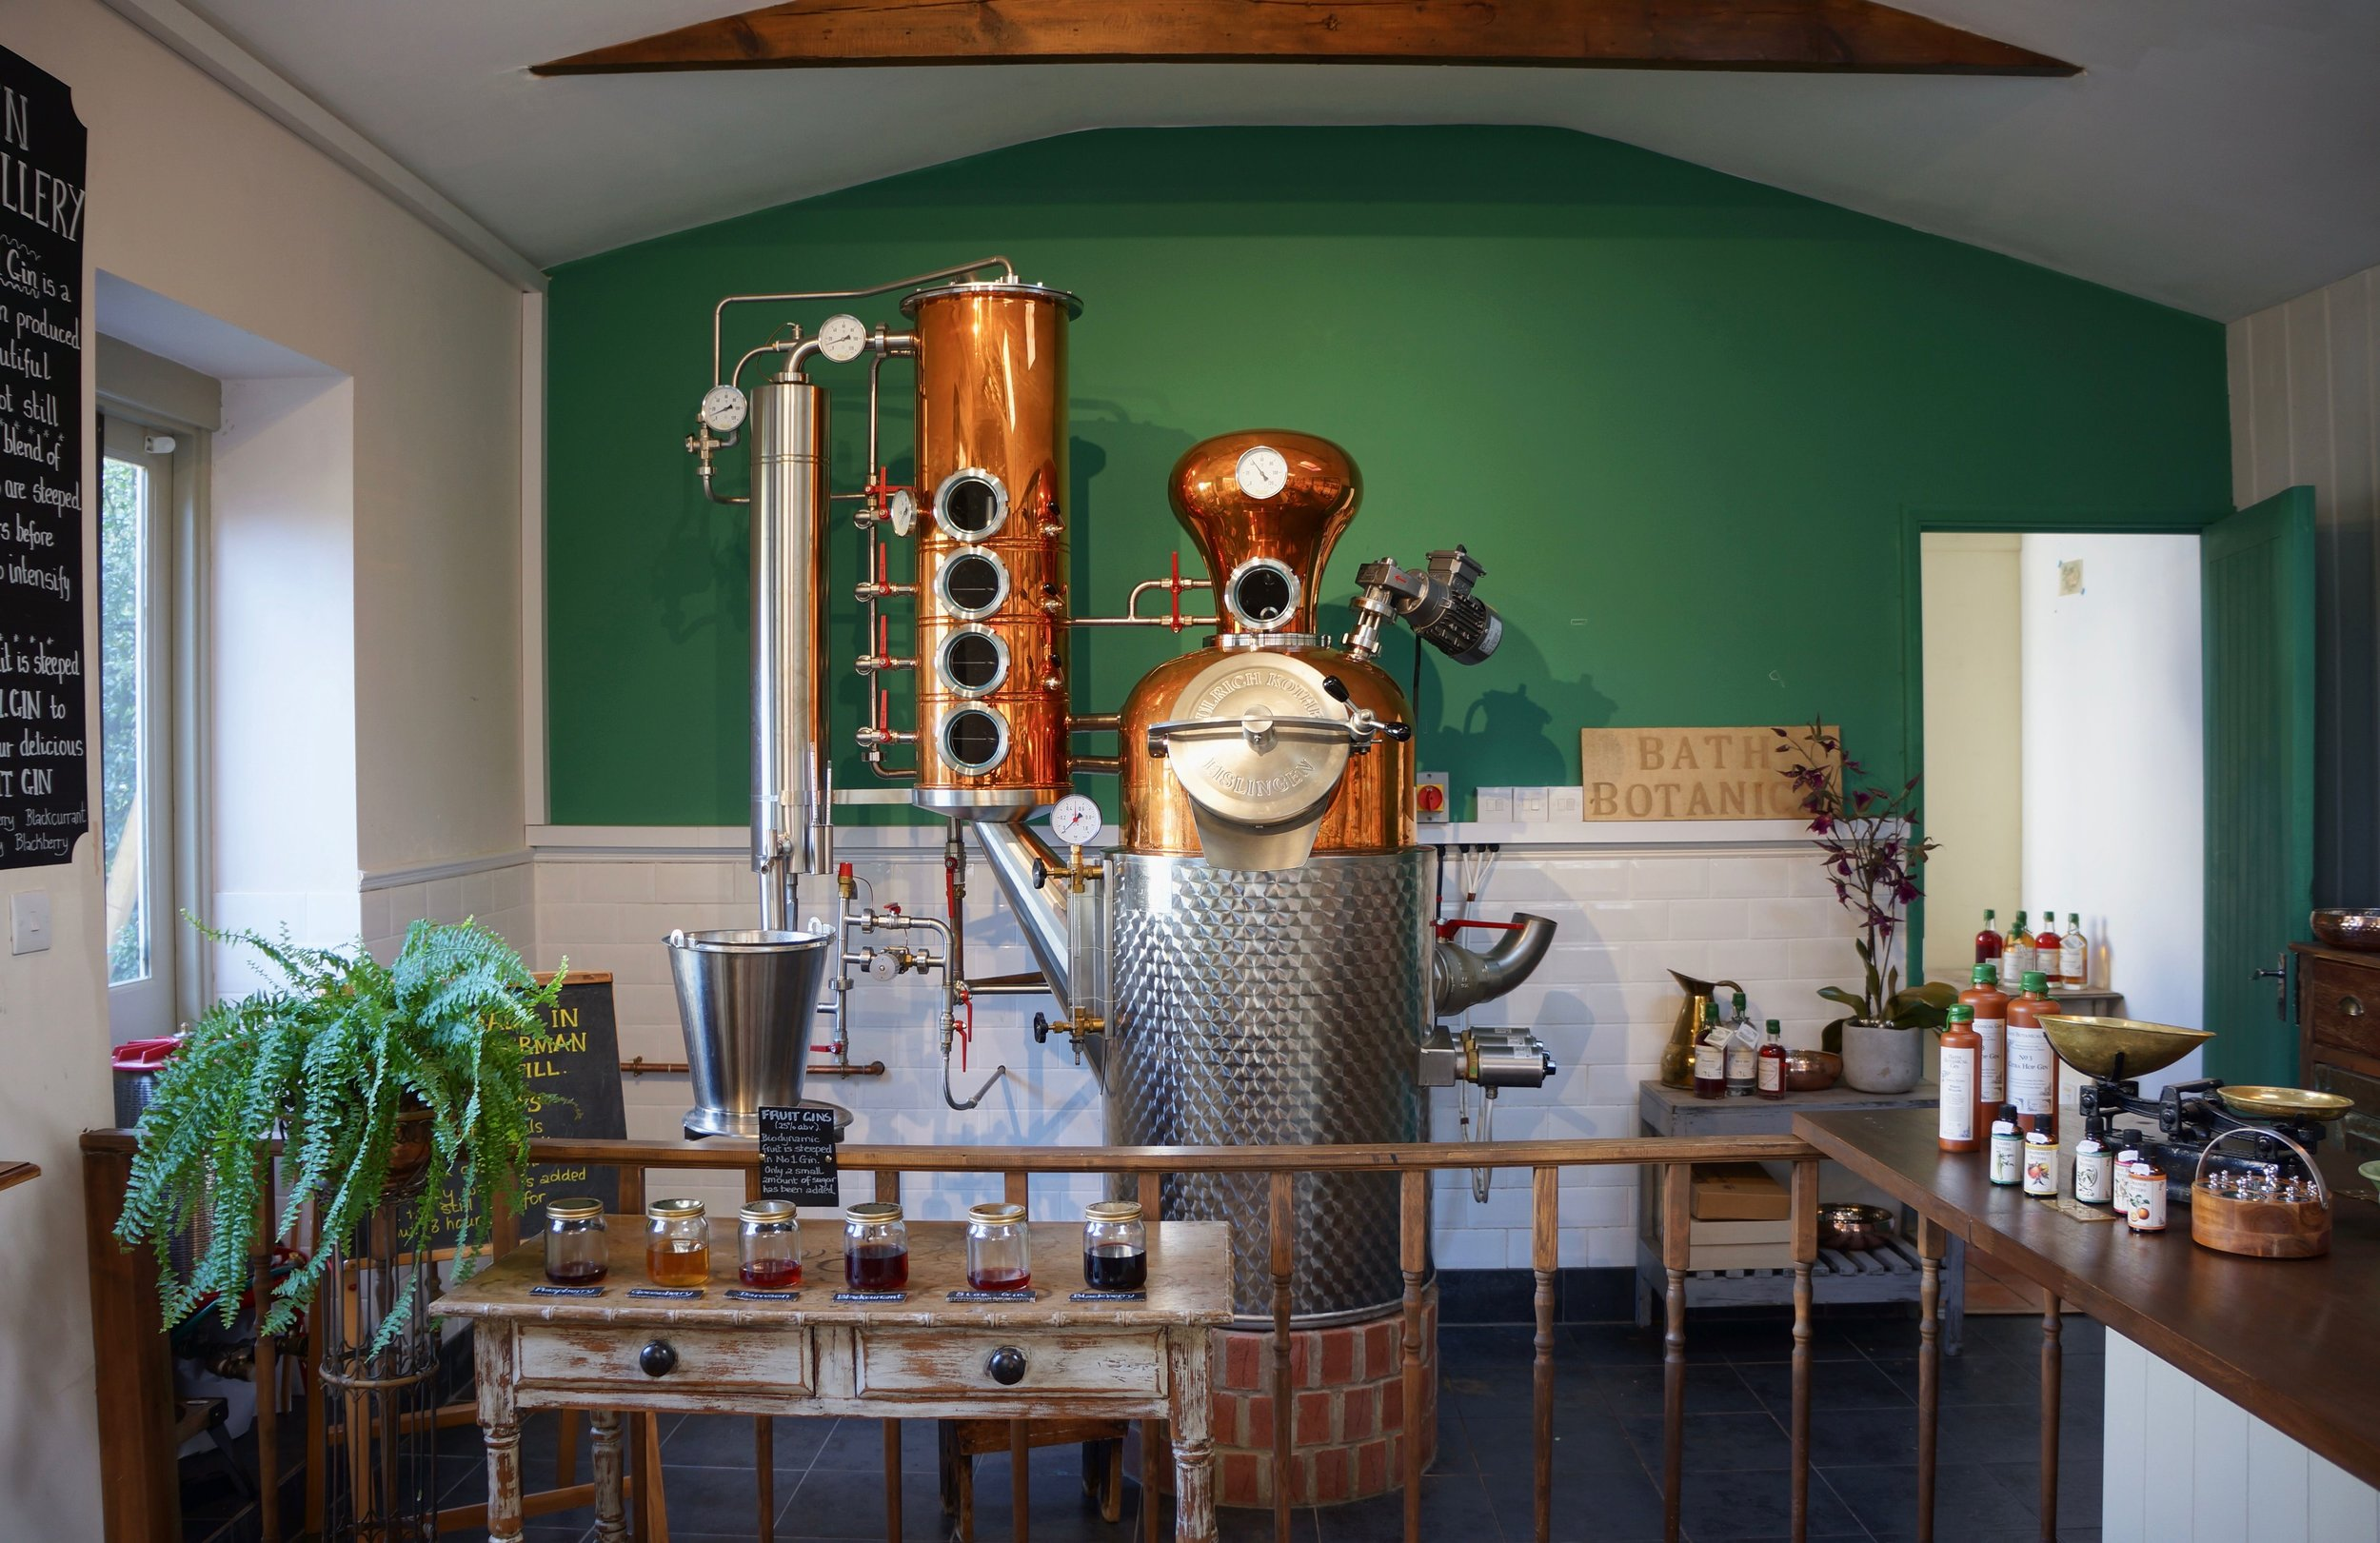 Bath Botanical Gin Distillery & Herbal Apothecary -